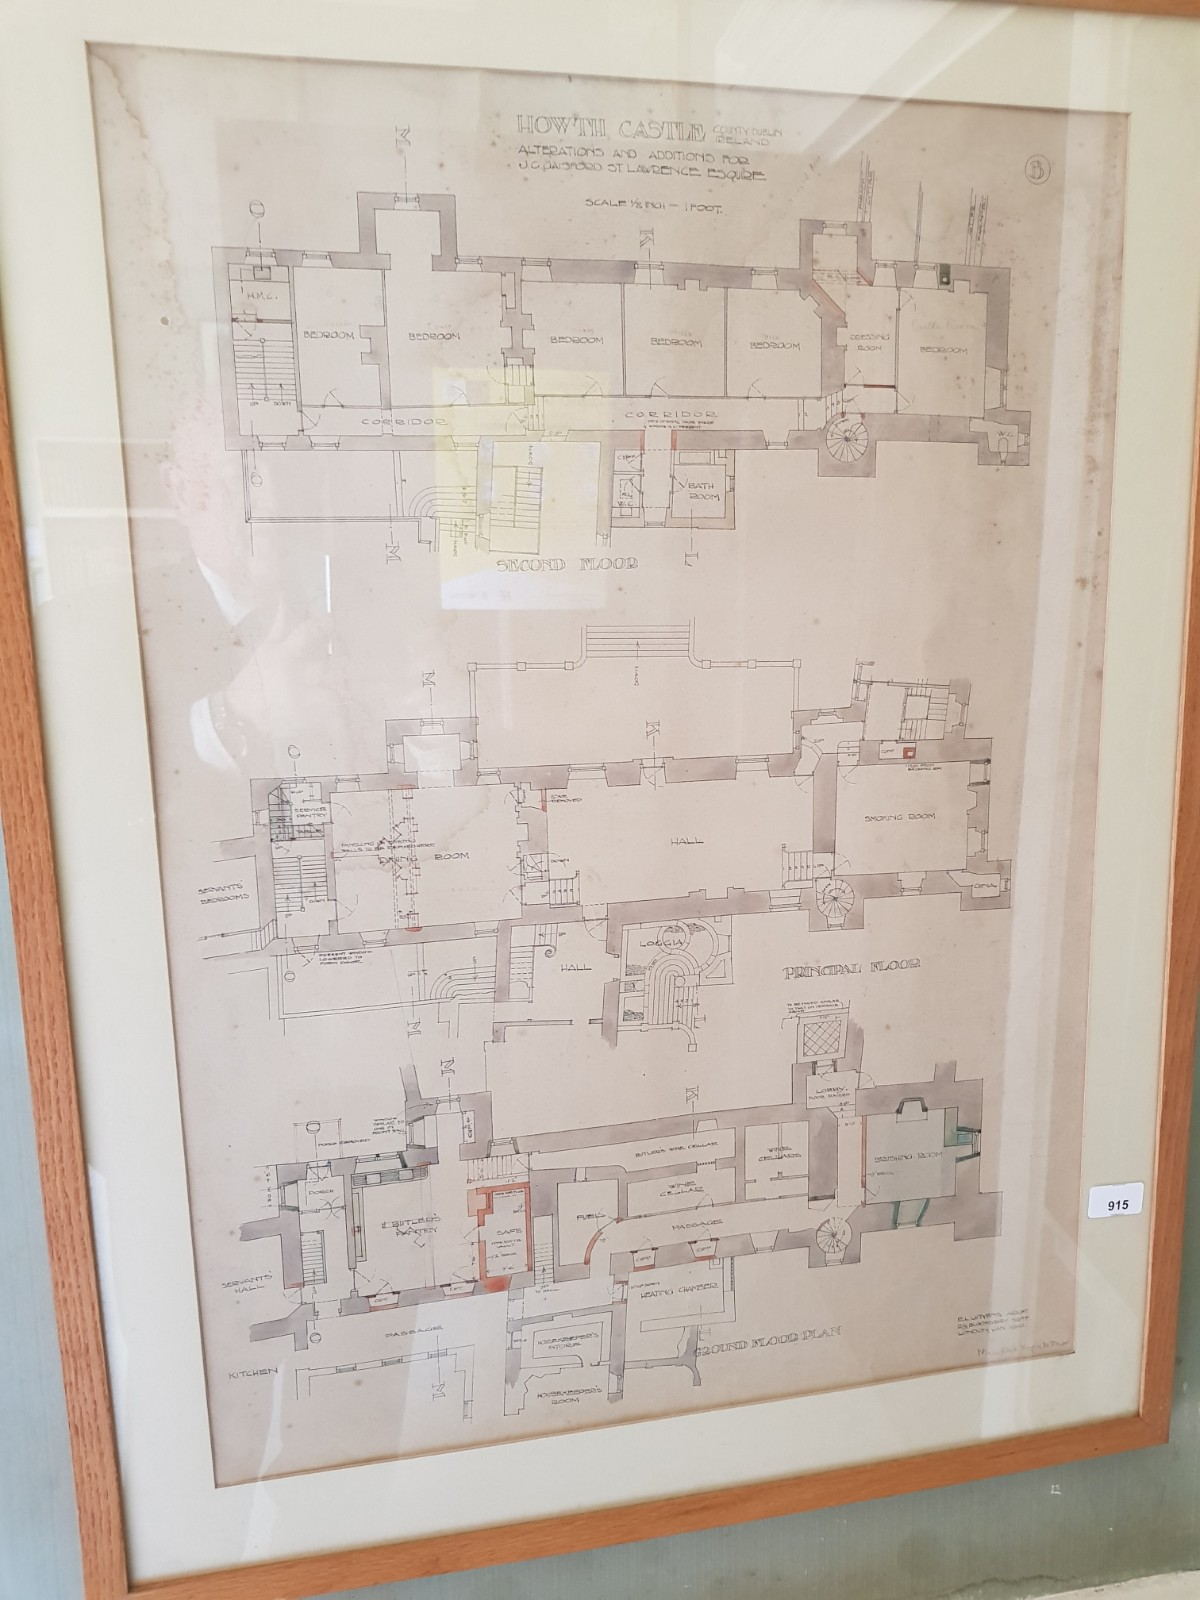 Sir Edward L. Lutyens 1869 - 1944 Howth Castle Plans: A Series of 10 Prototype Architect Drawings - Image 6 of 6